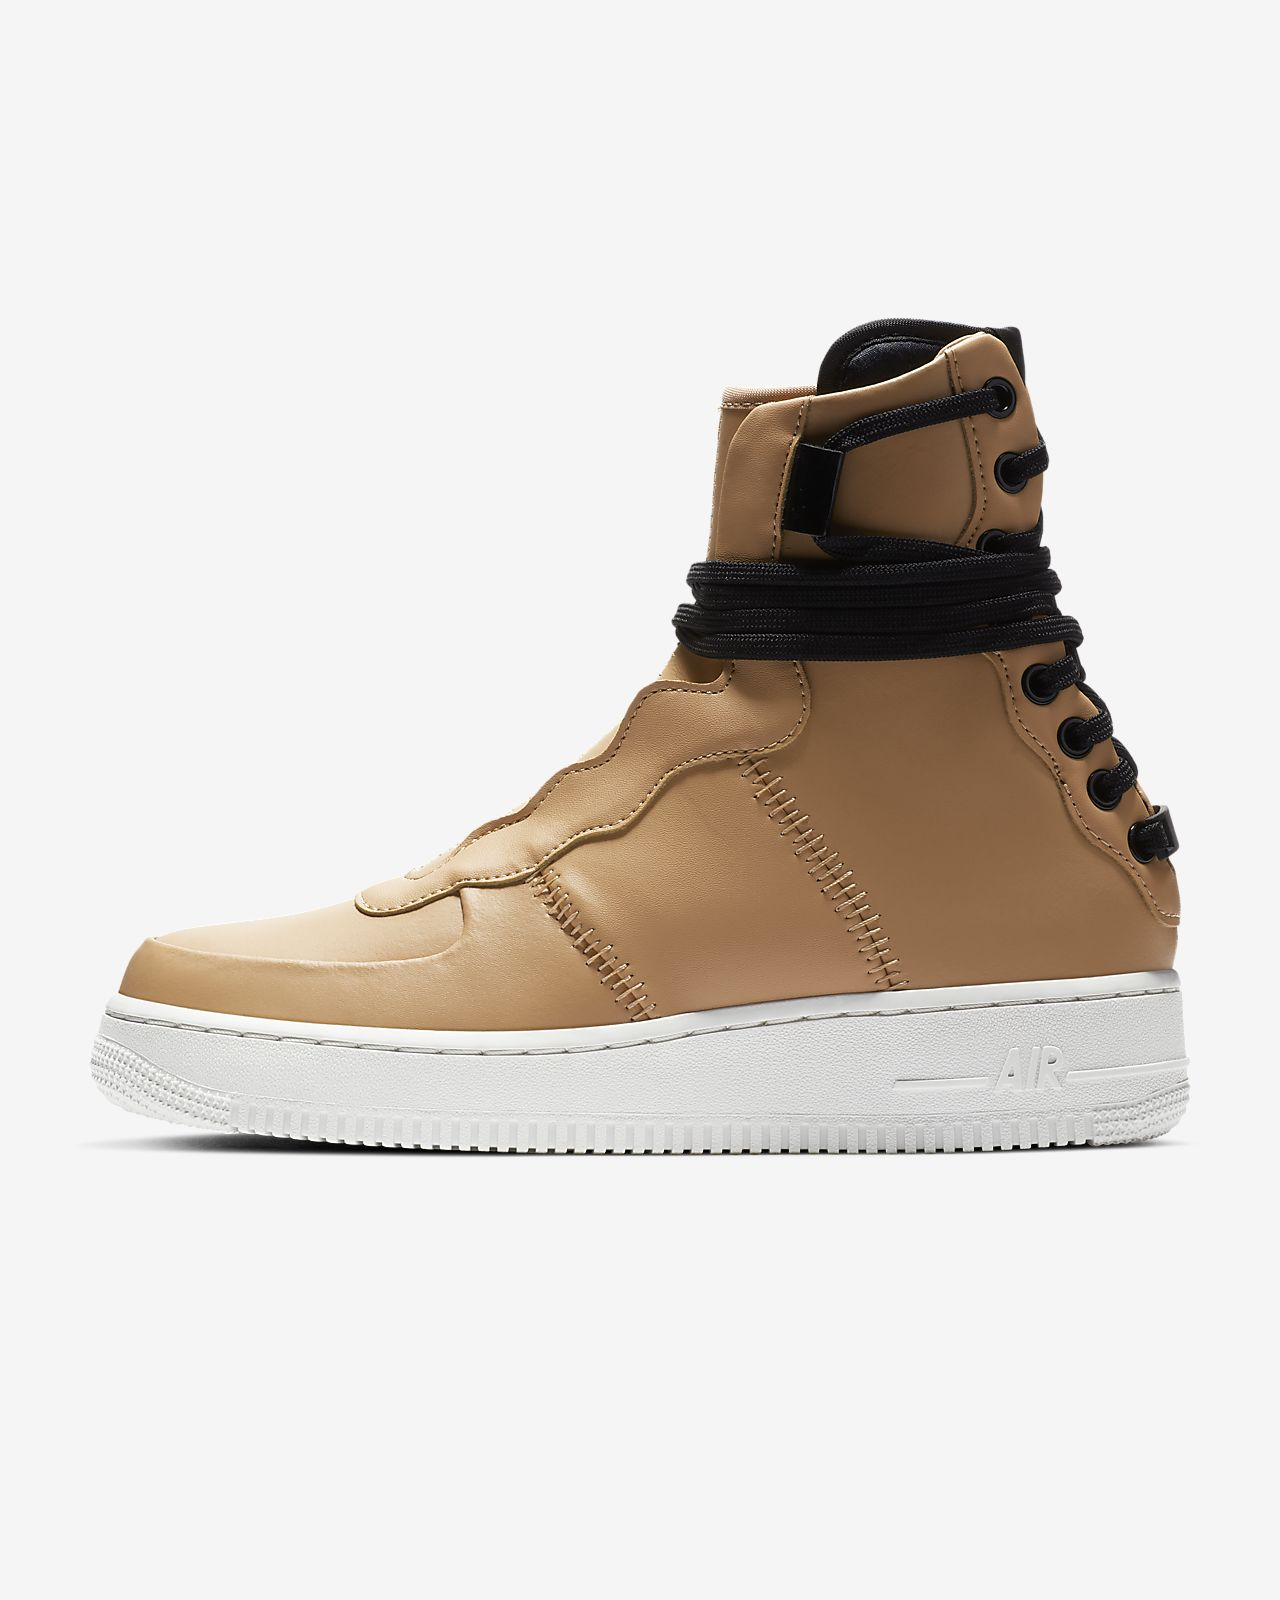 Chaussure Nike AF1 Rebel XX pour Femme